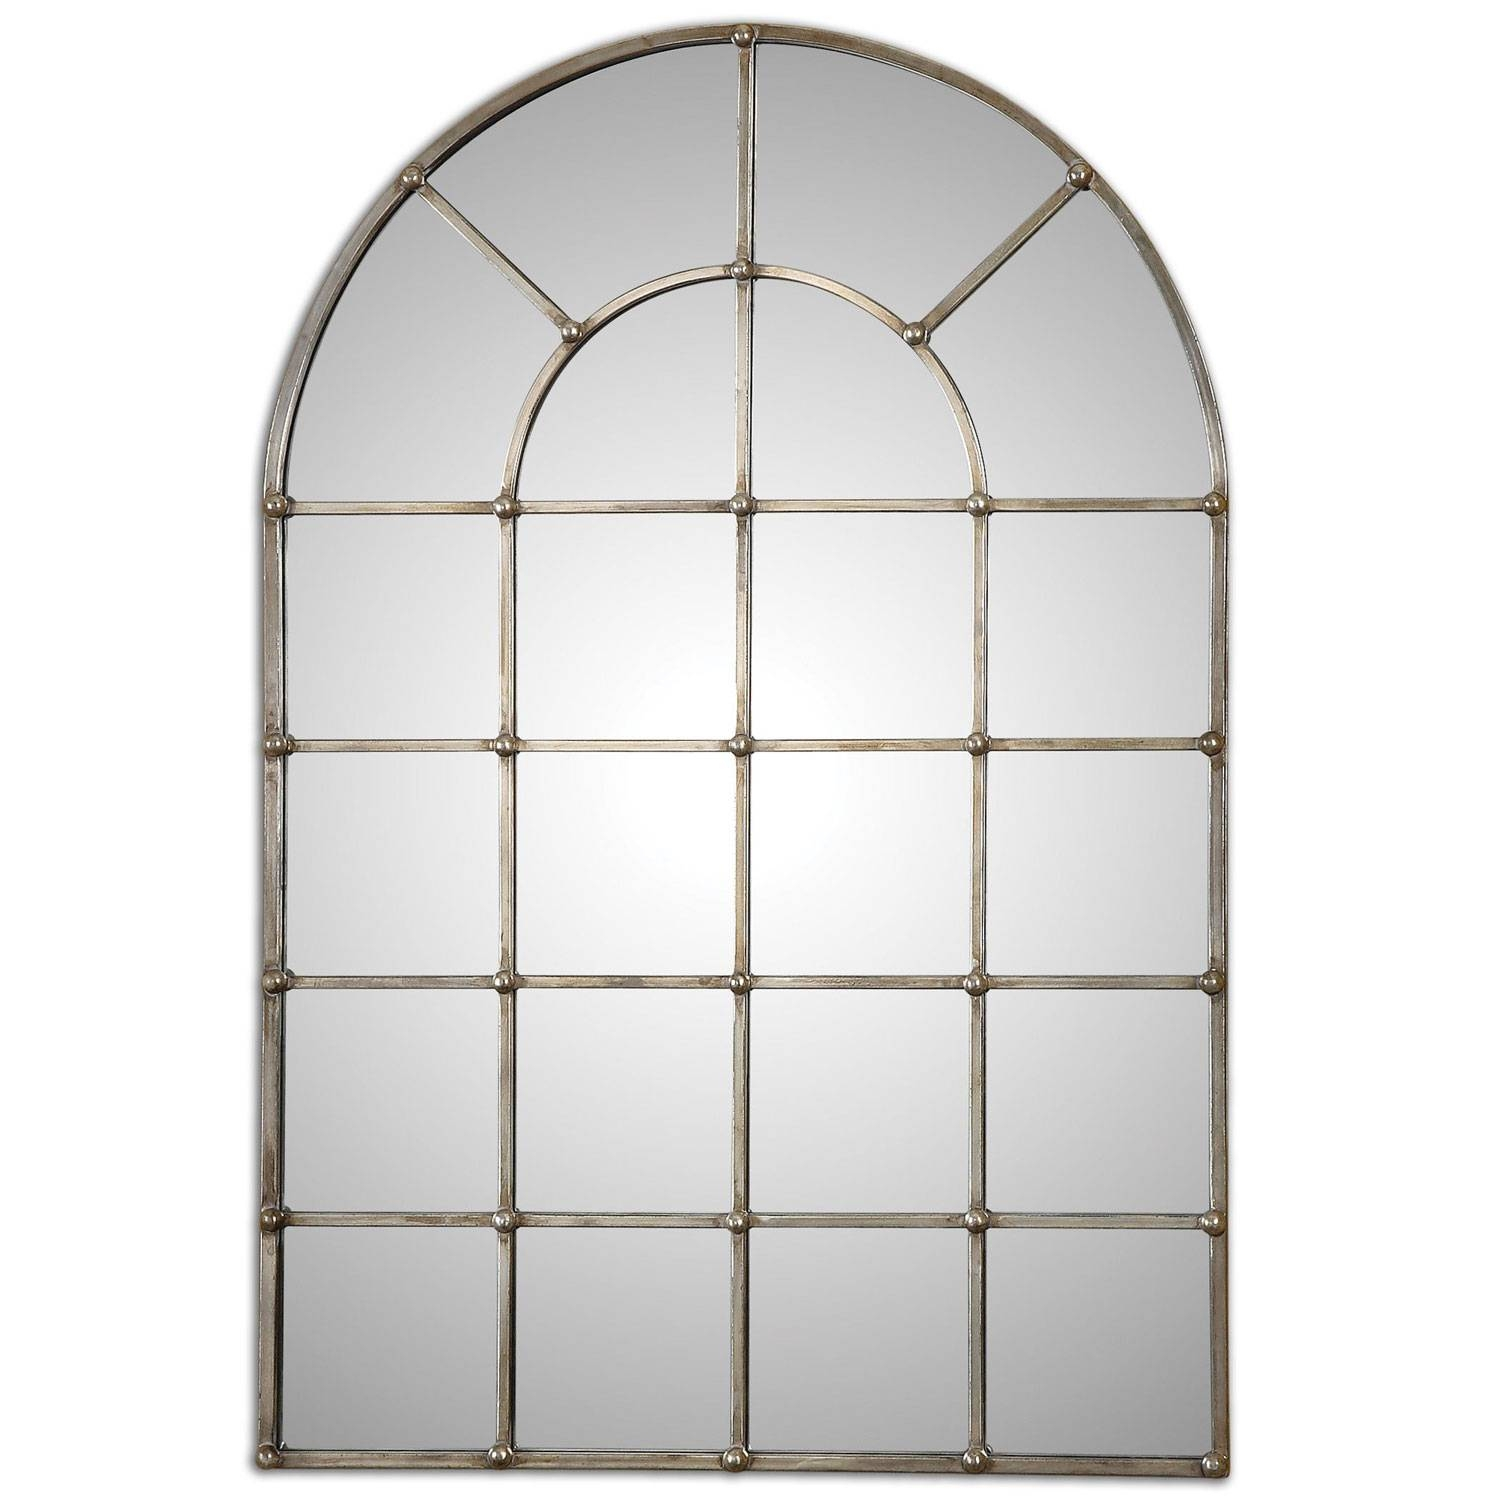 Dillingham Mirror Uttermost Wall Mirror Mirrors Home Decor throughout Arched Mirrors (Image 11 of 25)